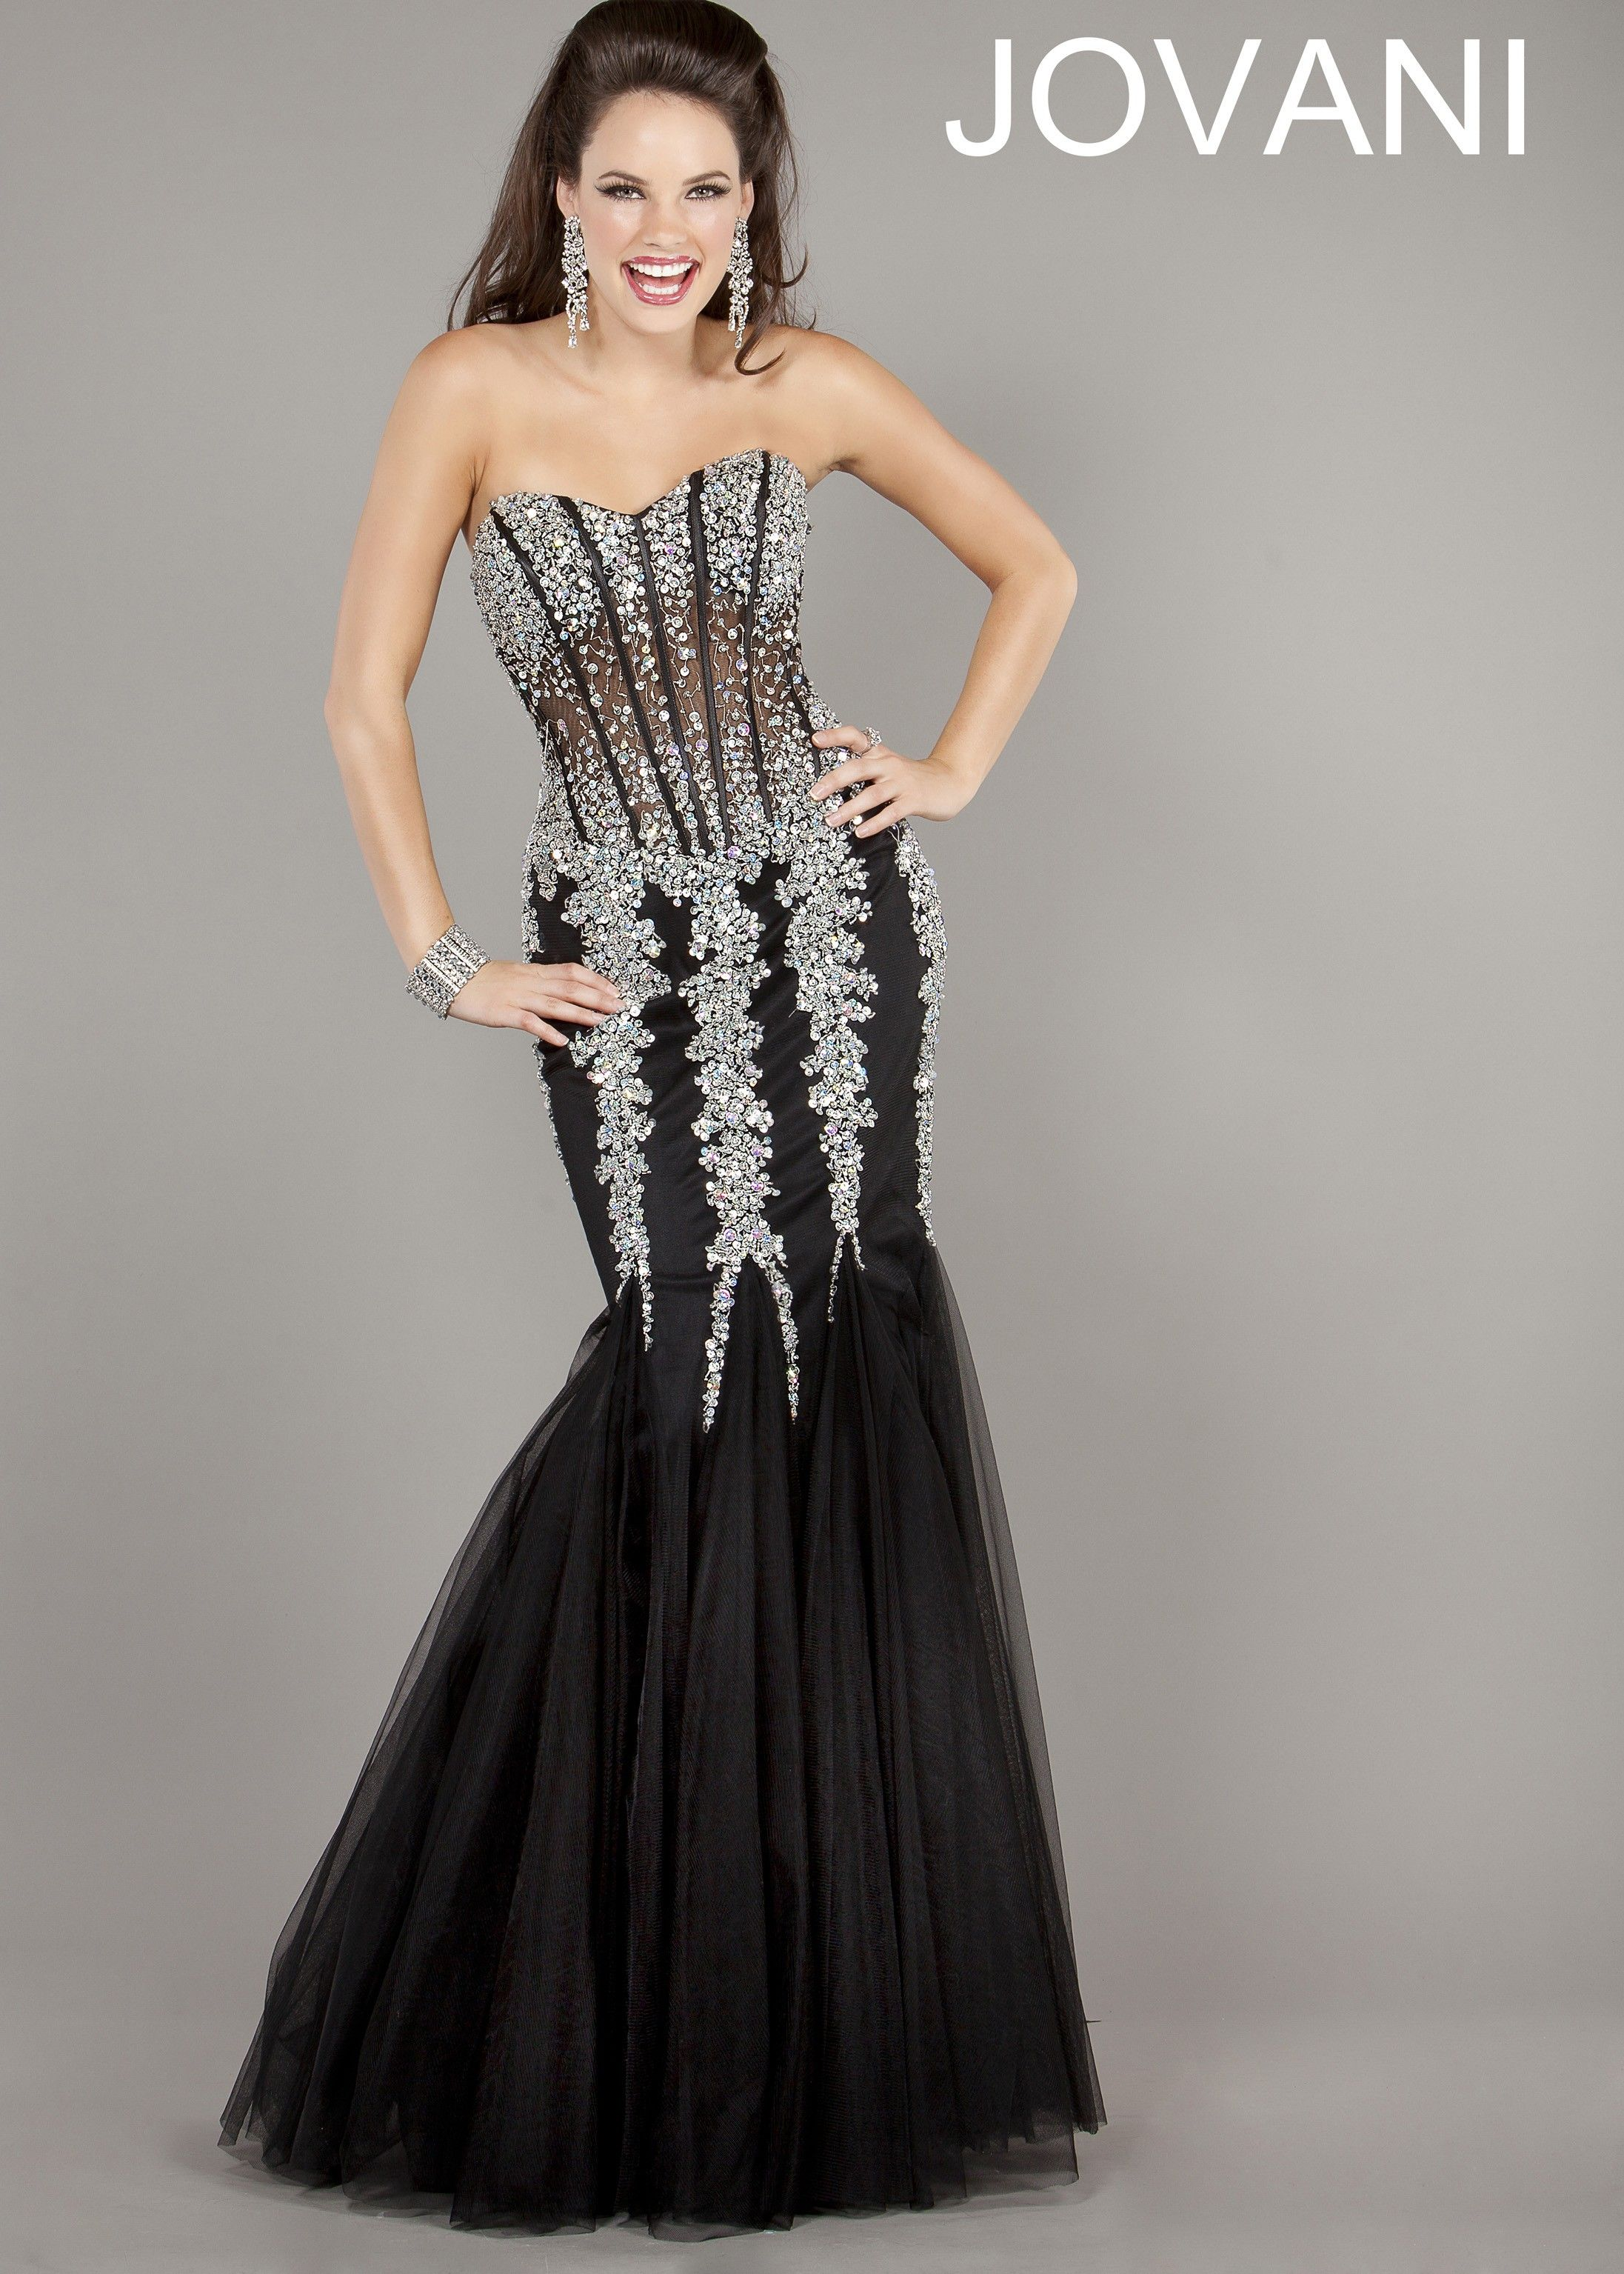 fadaeeb831ea Jovani 5908 Sheer Corset Beaded Mermaid Gown | 2013 Prom Collection ...